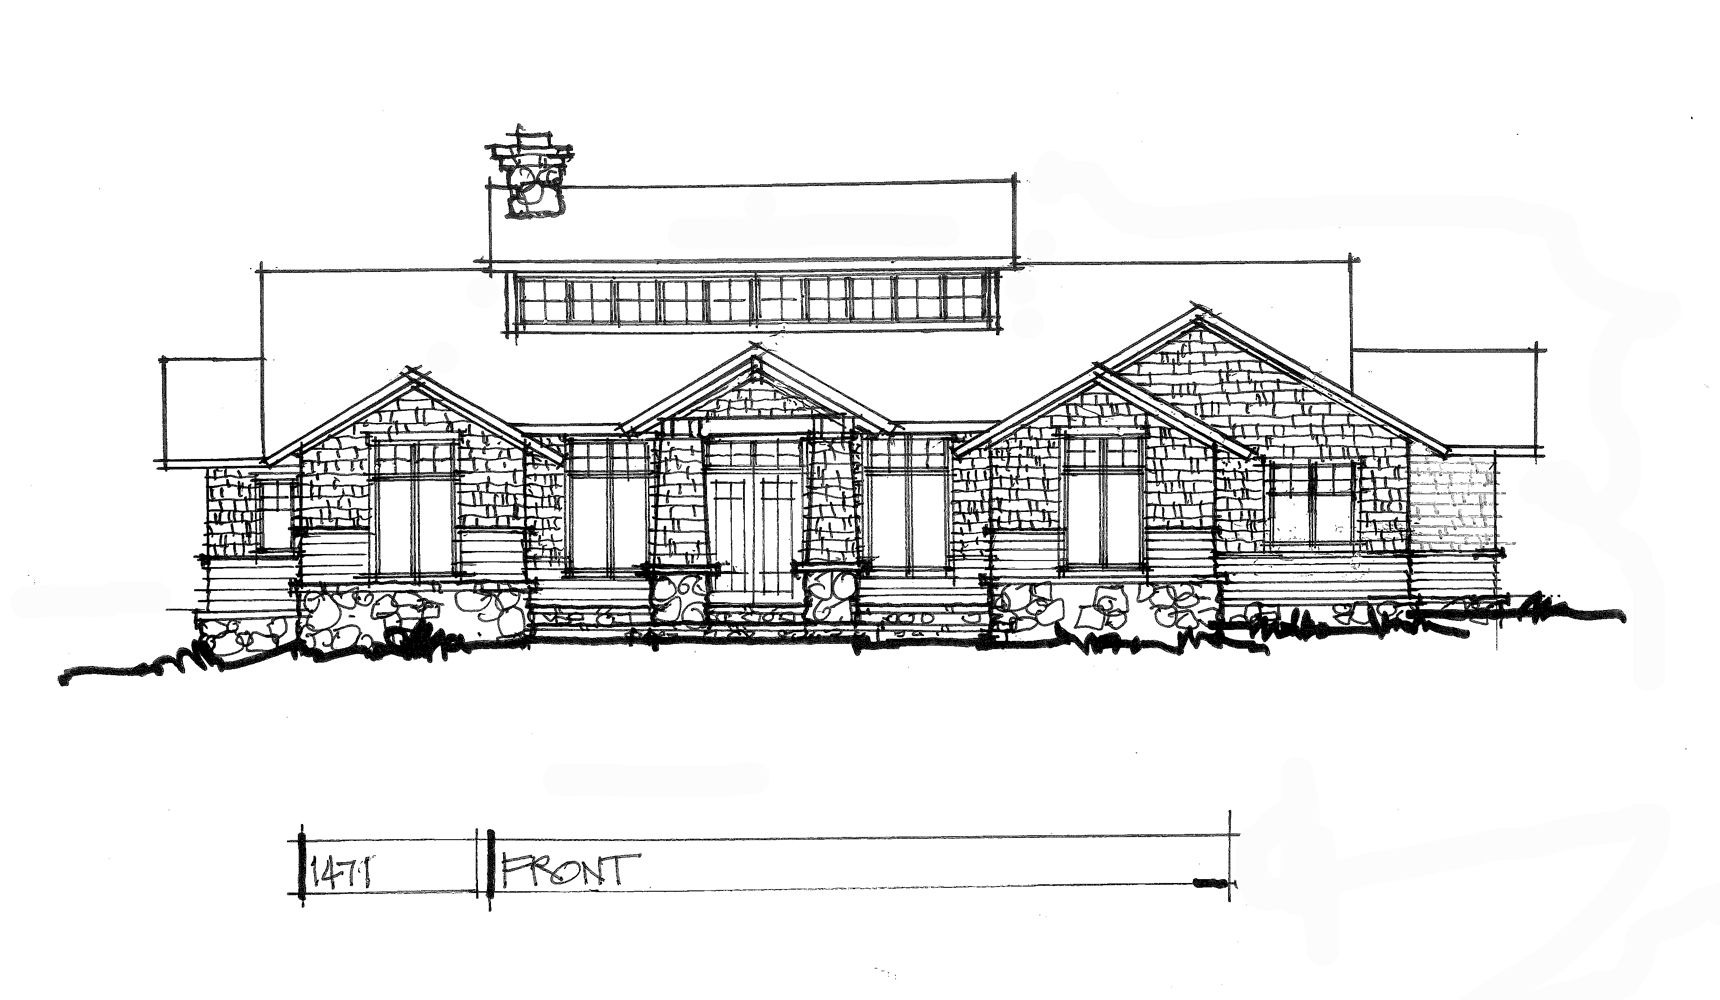 HOUSE PLAN 1471 – NOW IN PROGRESS | Must-See House Plans ... on kame house sketch, victorian house sketch, split level house sketch, colonial house sketch, cottage house sketch, bungalow house sketch, contemporary house sketch, cape cod house sketch, pool house sketch, tudor house sketch,